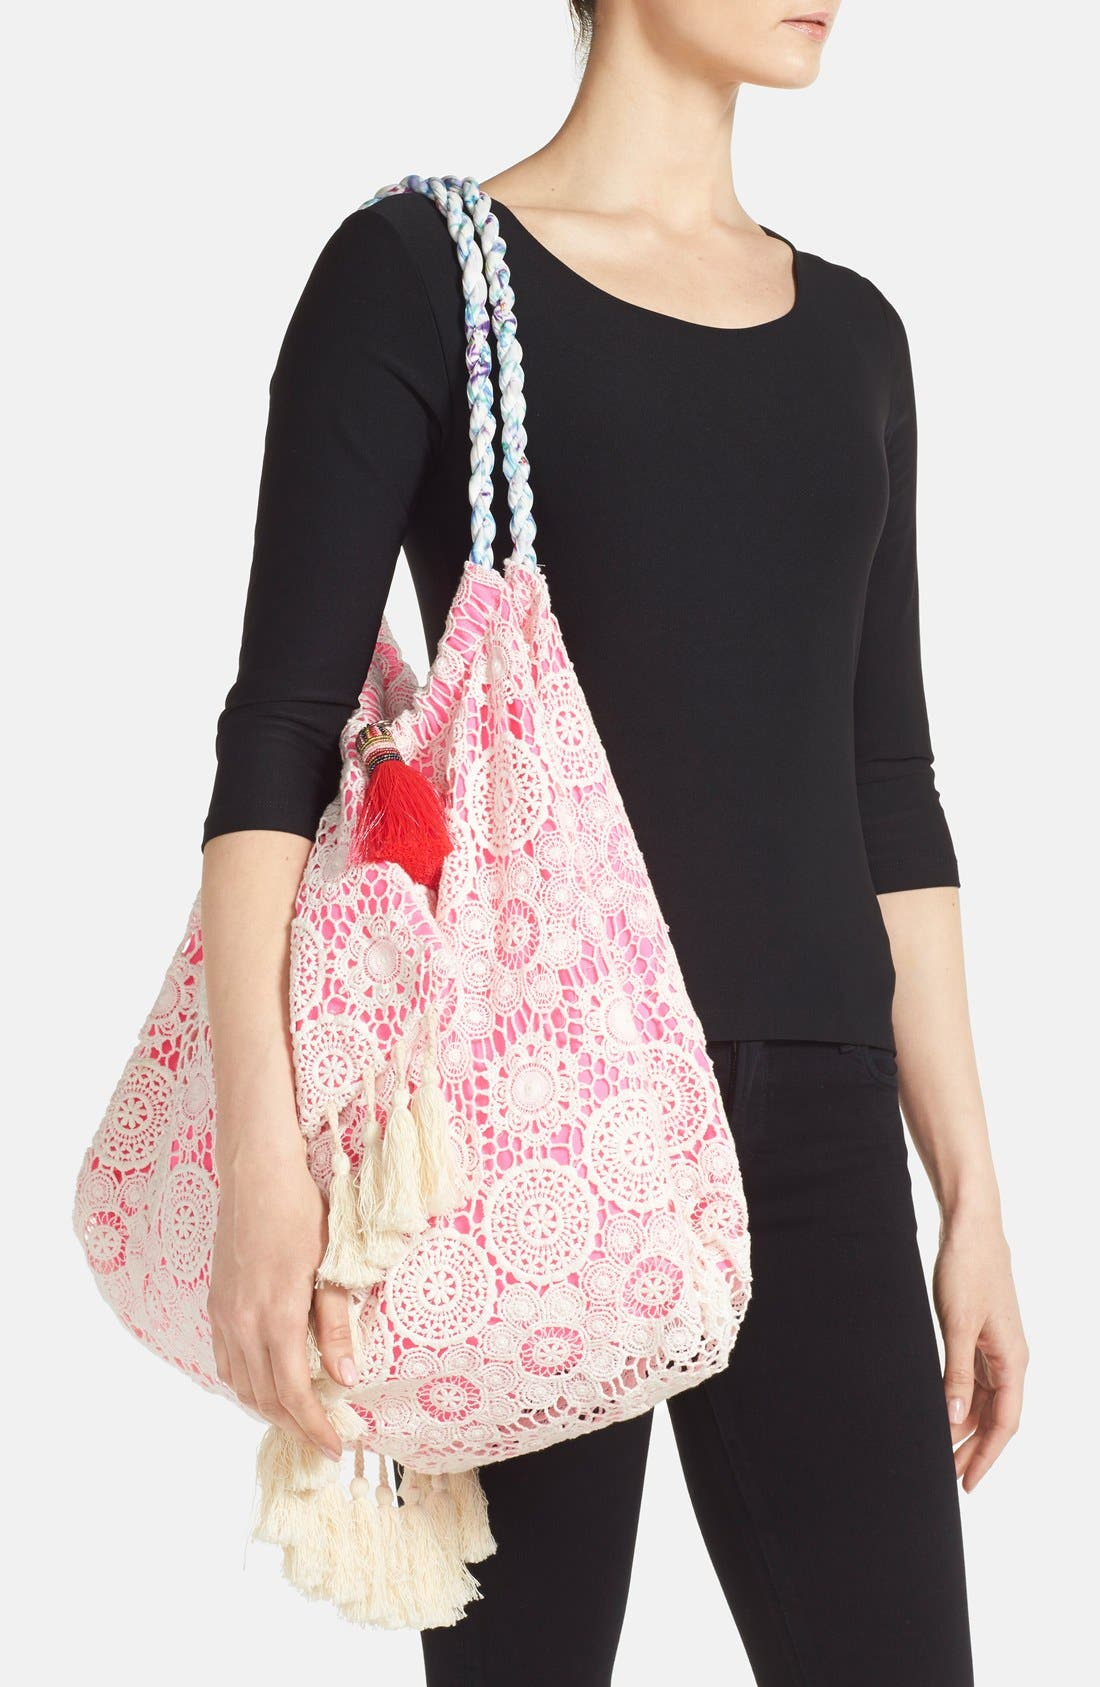 6 SHORE ROAD BY POOJA,                             'Sunset' Beach Bag,                             Alternate thumbnail 2, color,                             650